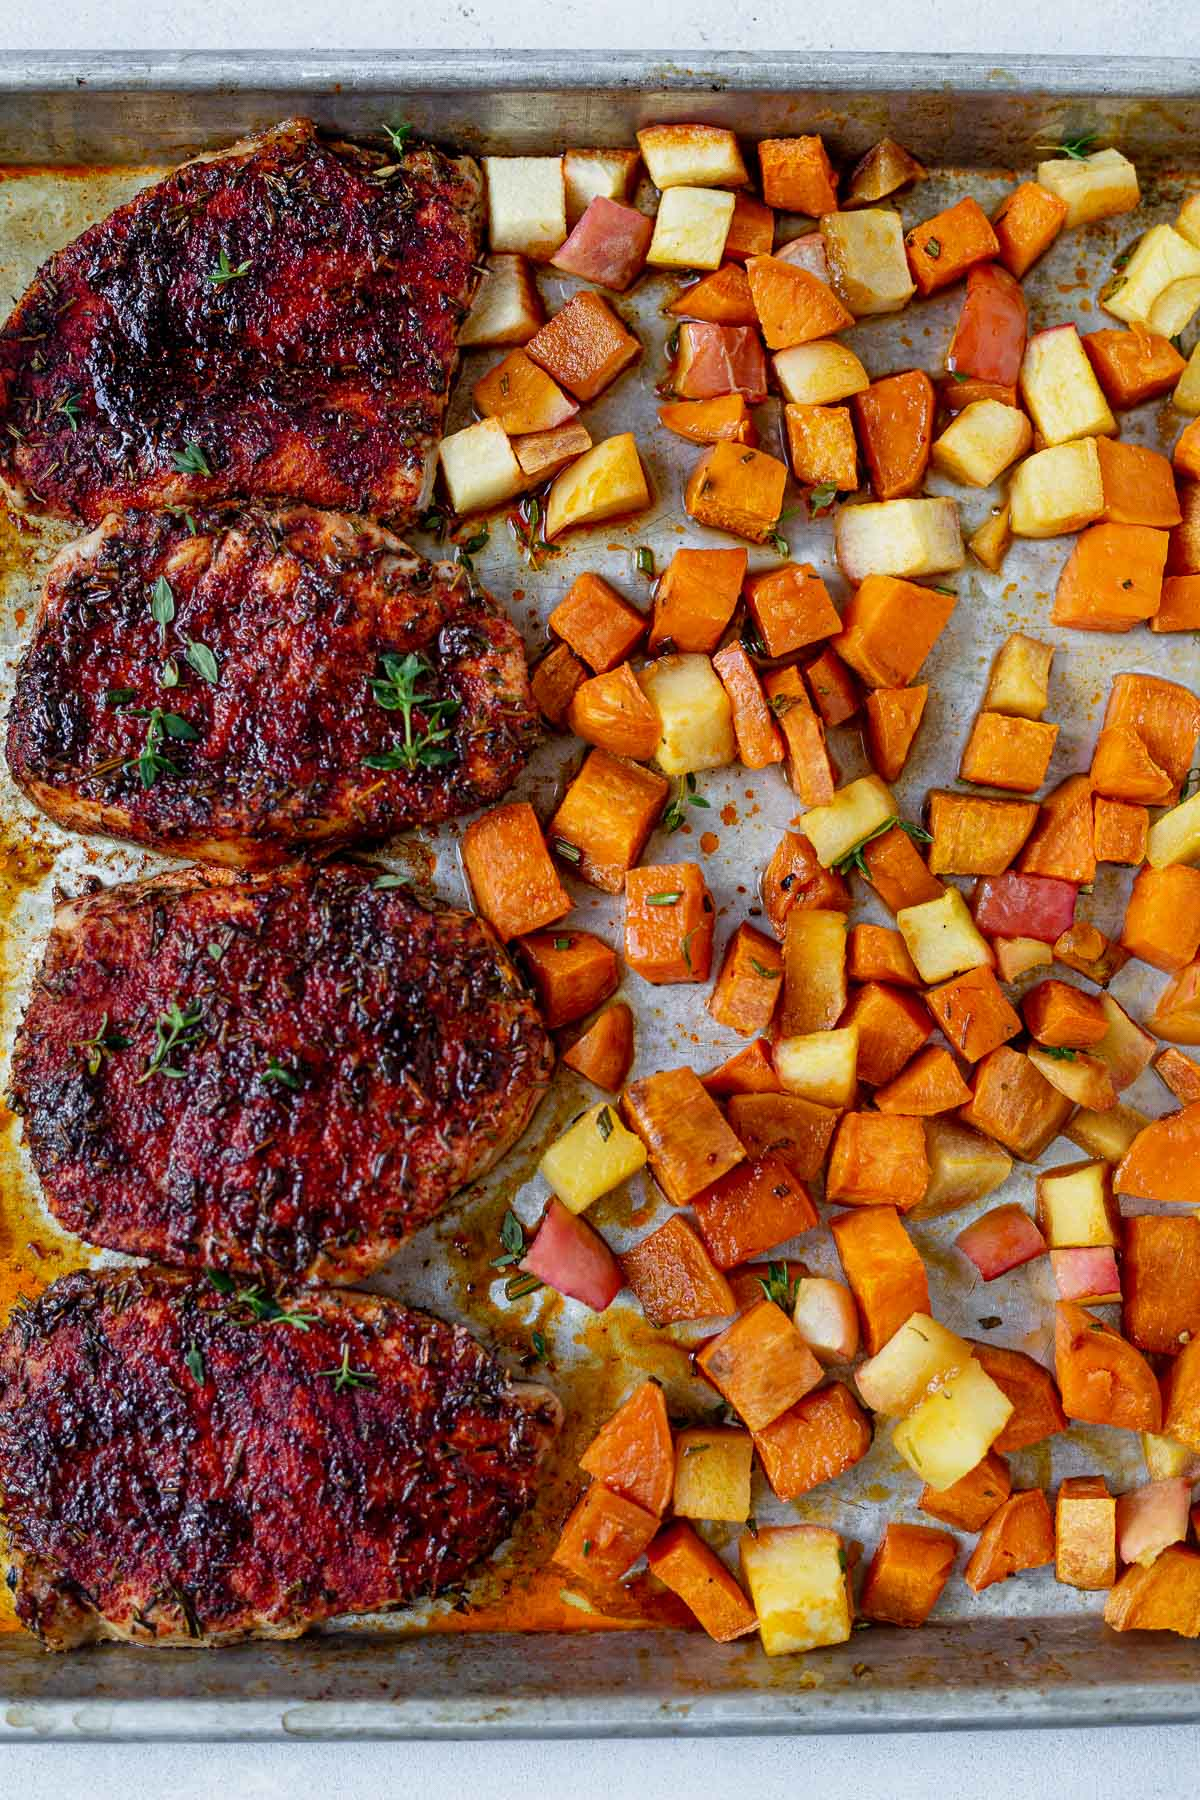 seasoned pork chops on a sheet pan with roasted sweet potatoes and apples